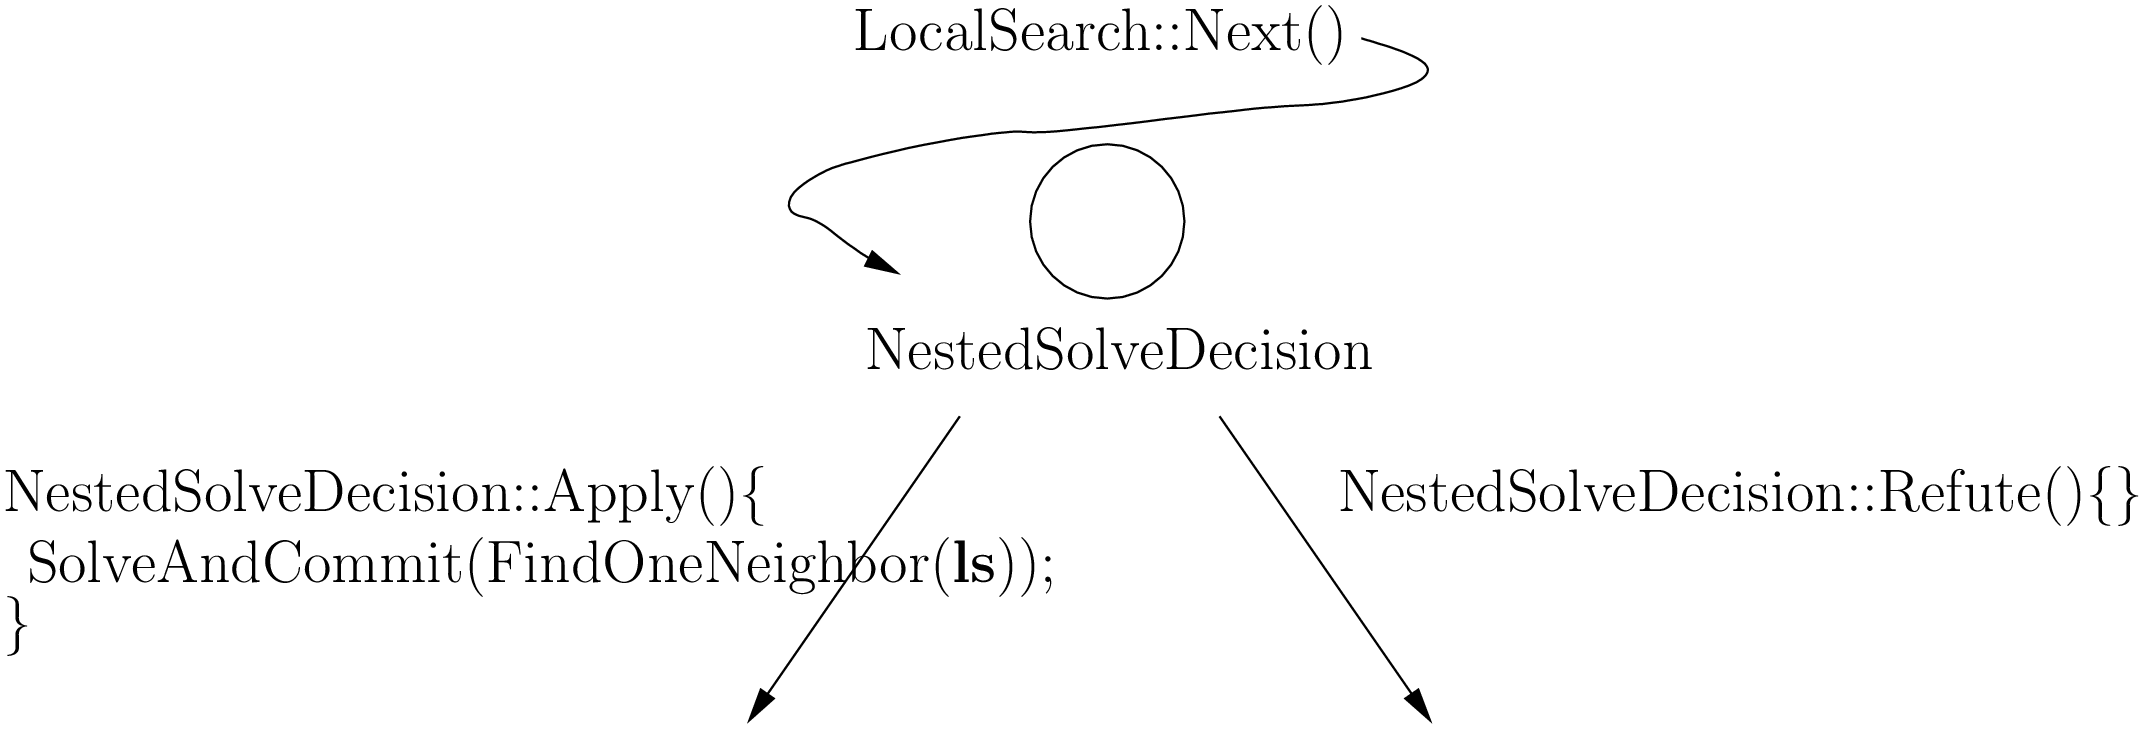 6.5. Basic working of the solver: Local Search — or-tools